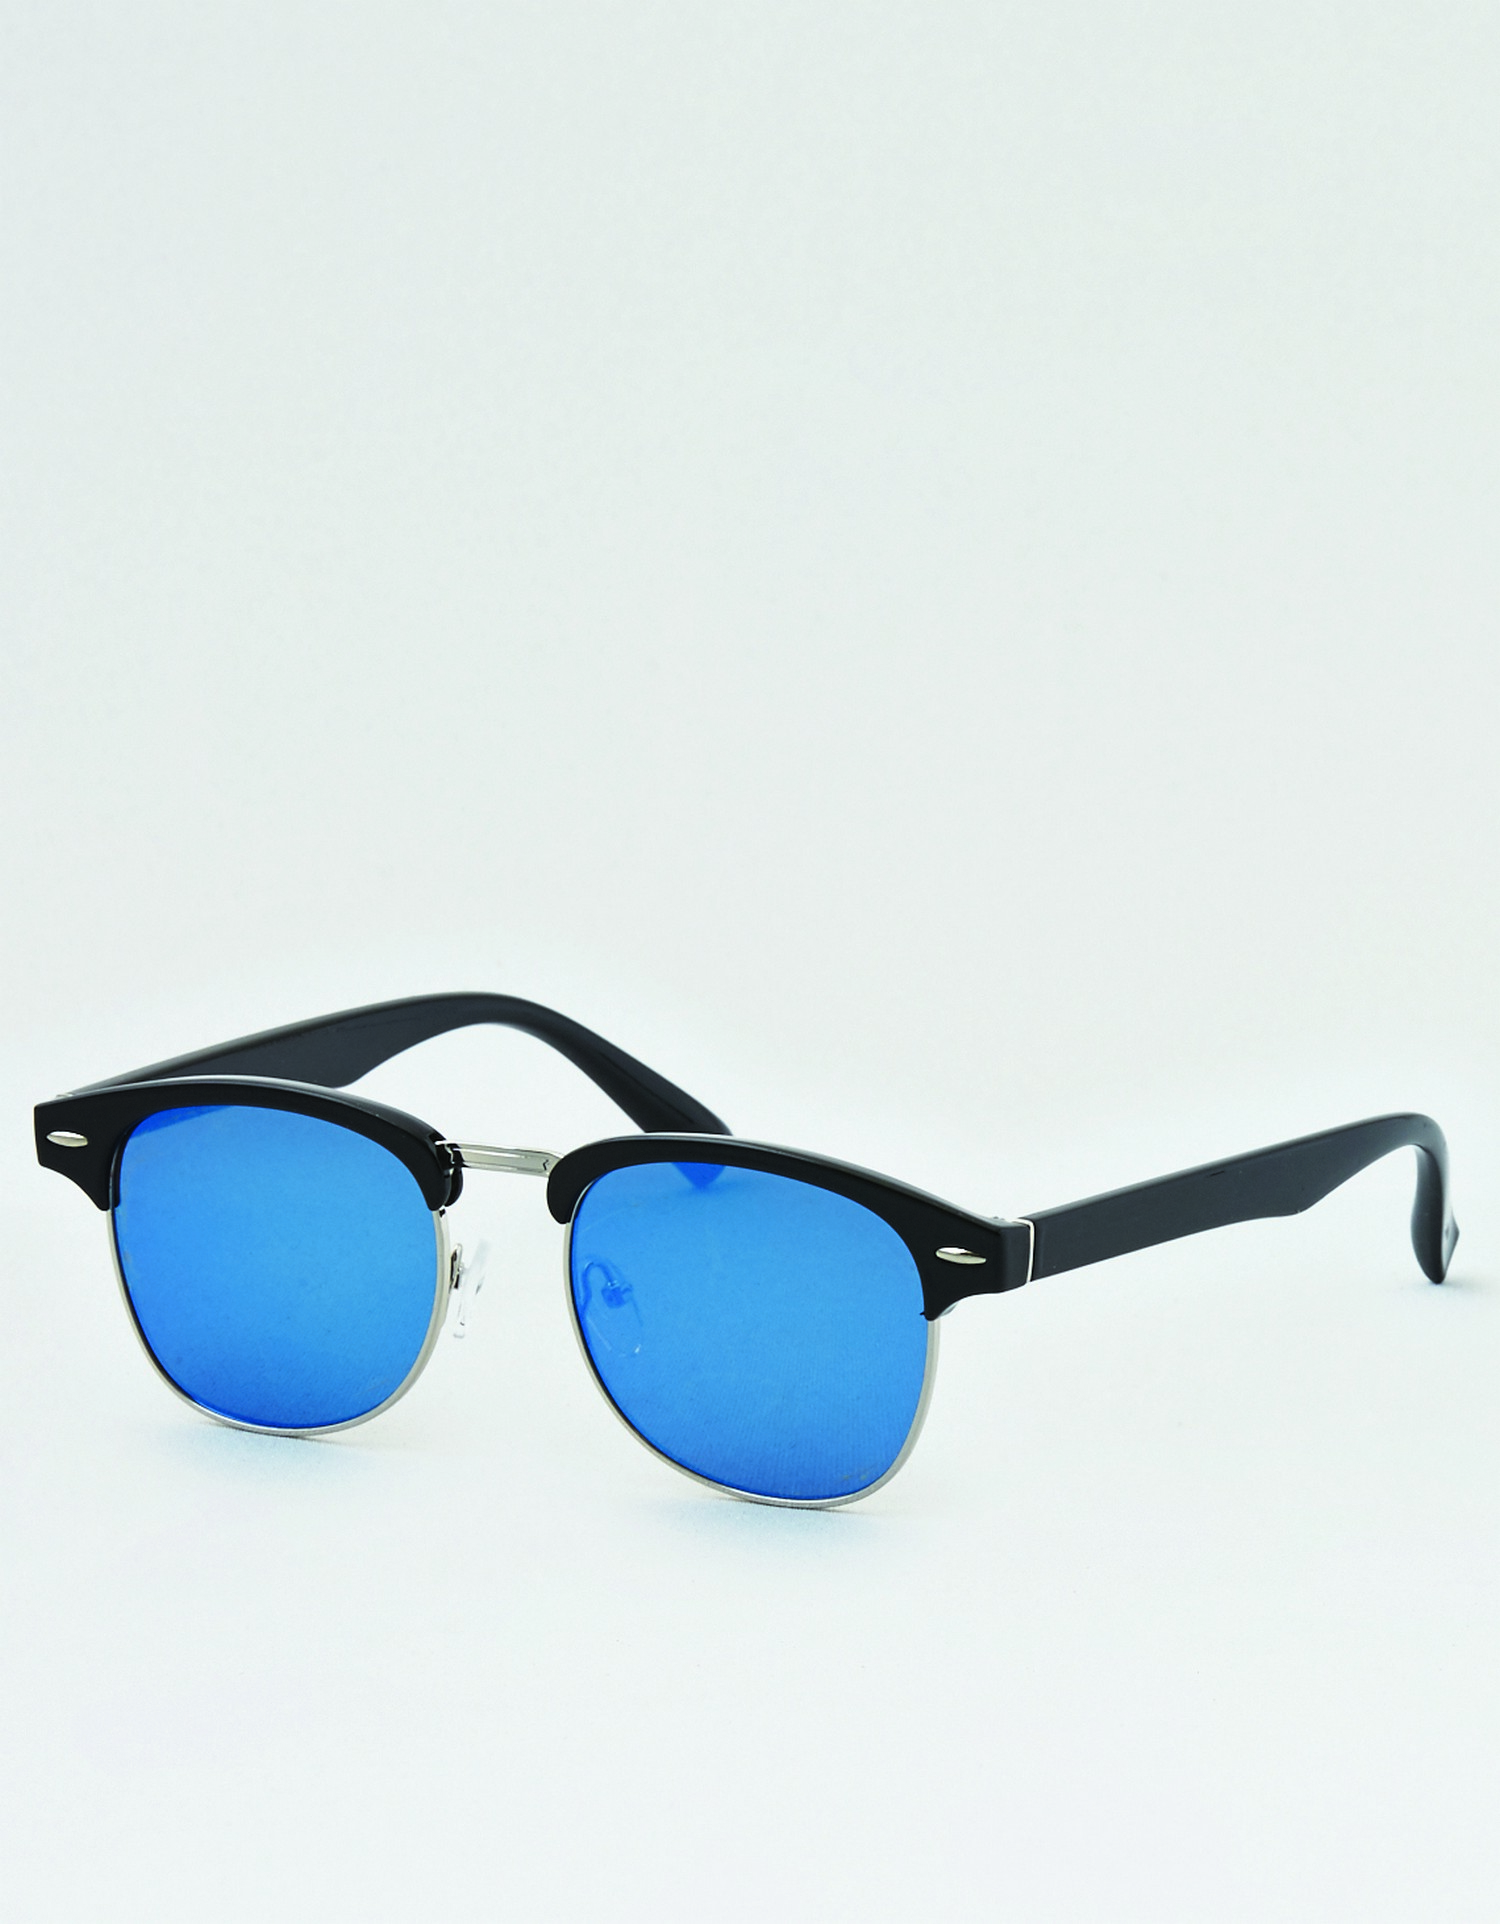 AE- W- FEB- ACCESSORIES- SUNGLASSES- BLUE CLUB SUNGLASSES- BLACK FRAMES- REFLECTIVE BLUE LENSE- SILVER HARDWARE JP *Tracked